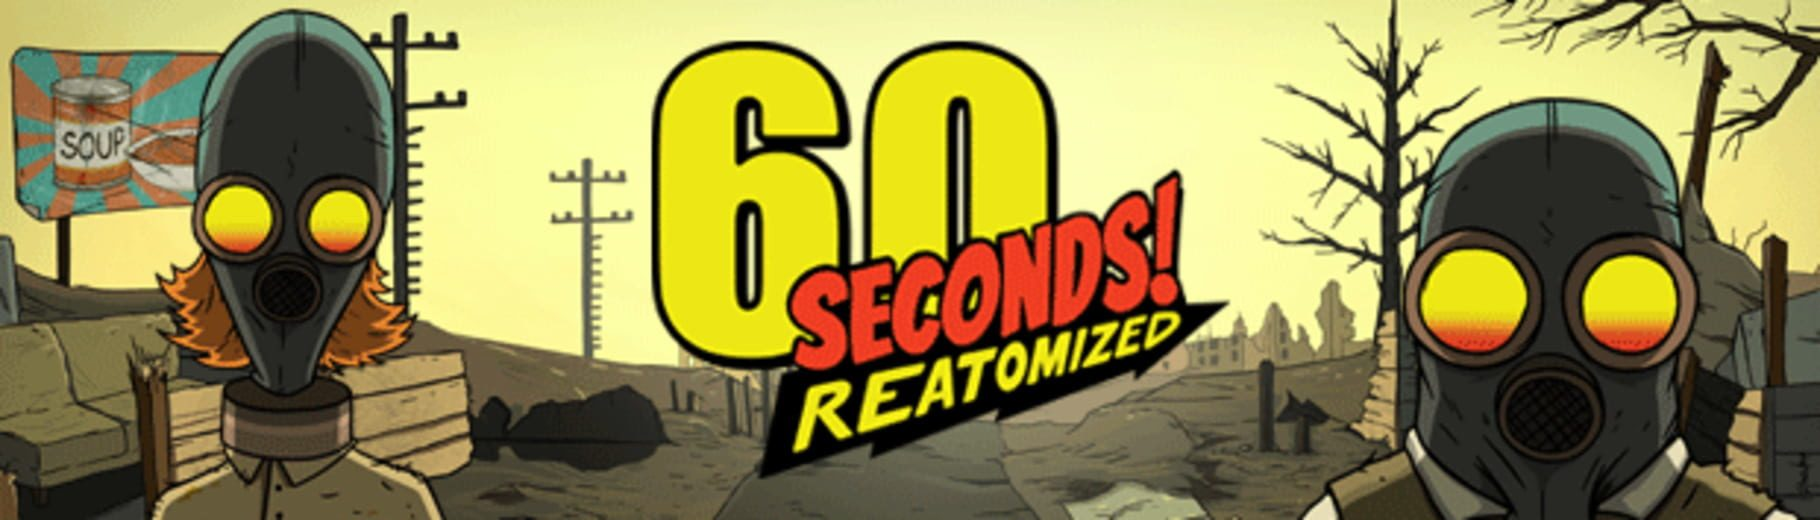 buy 60 Seconds! Reatomized cd key for all platform